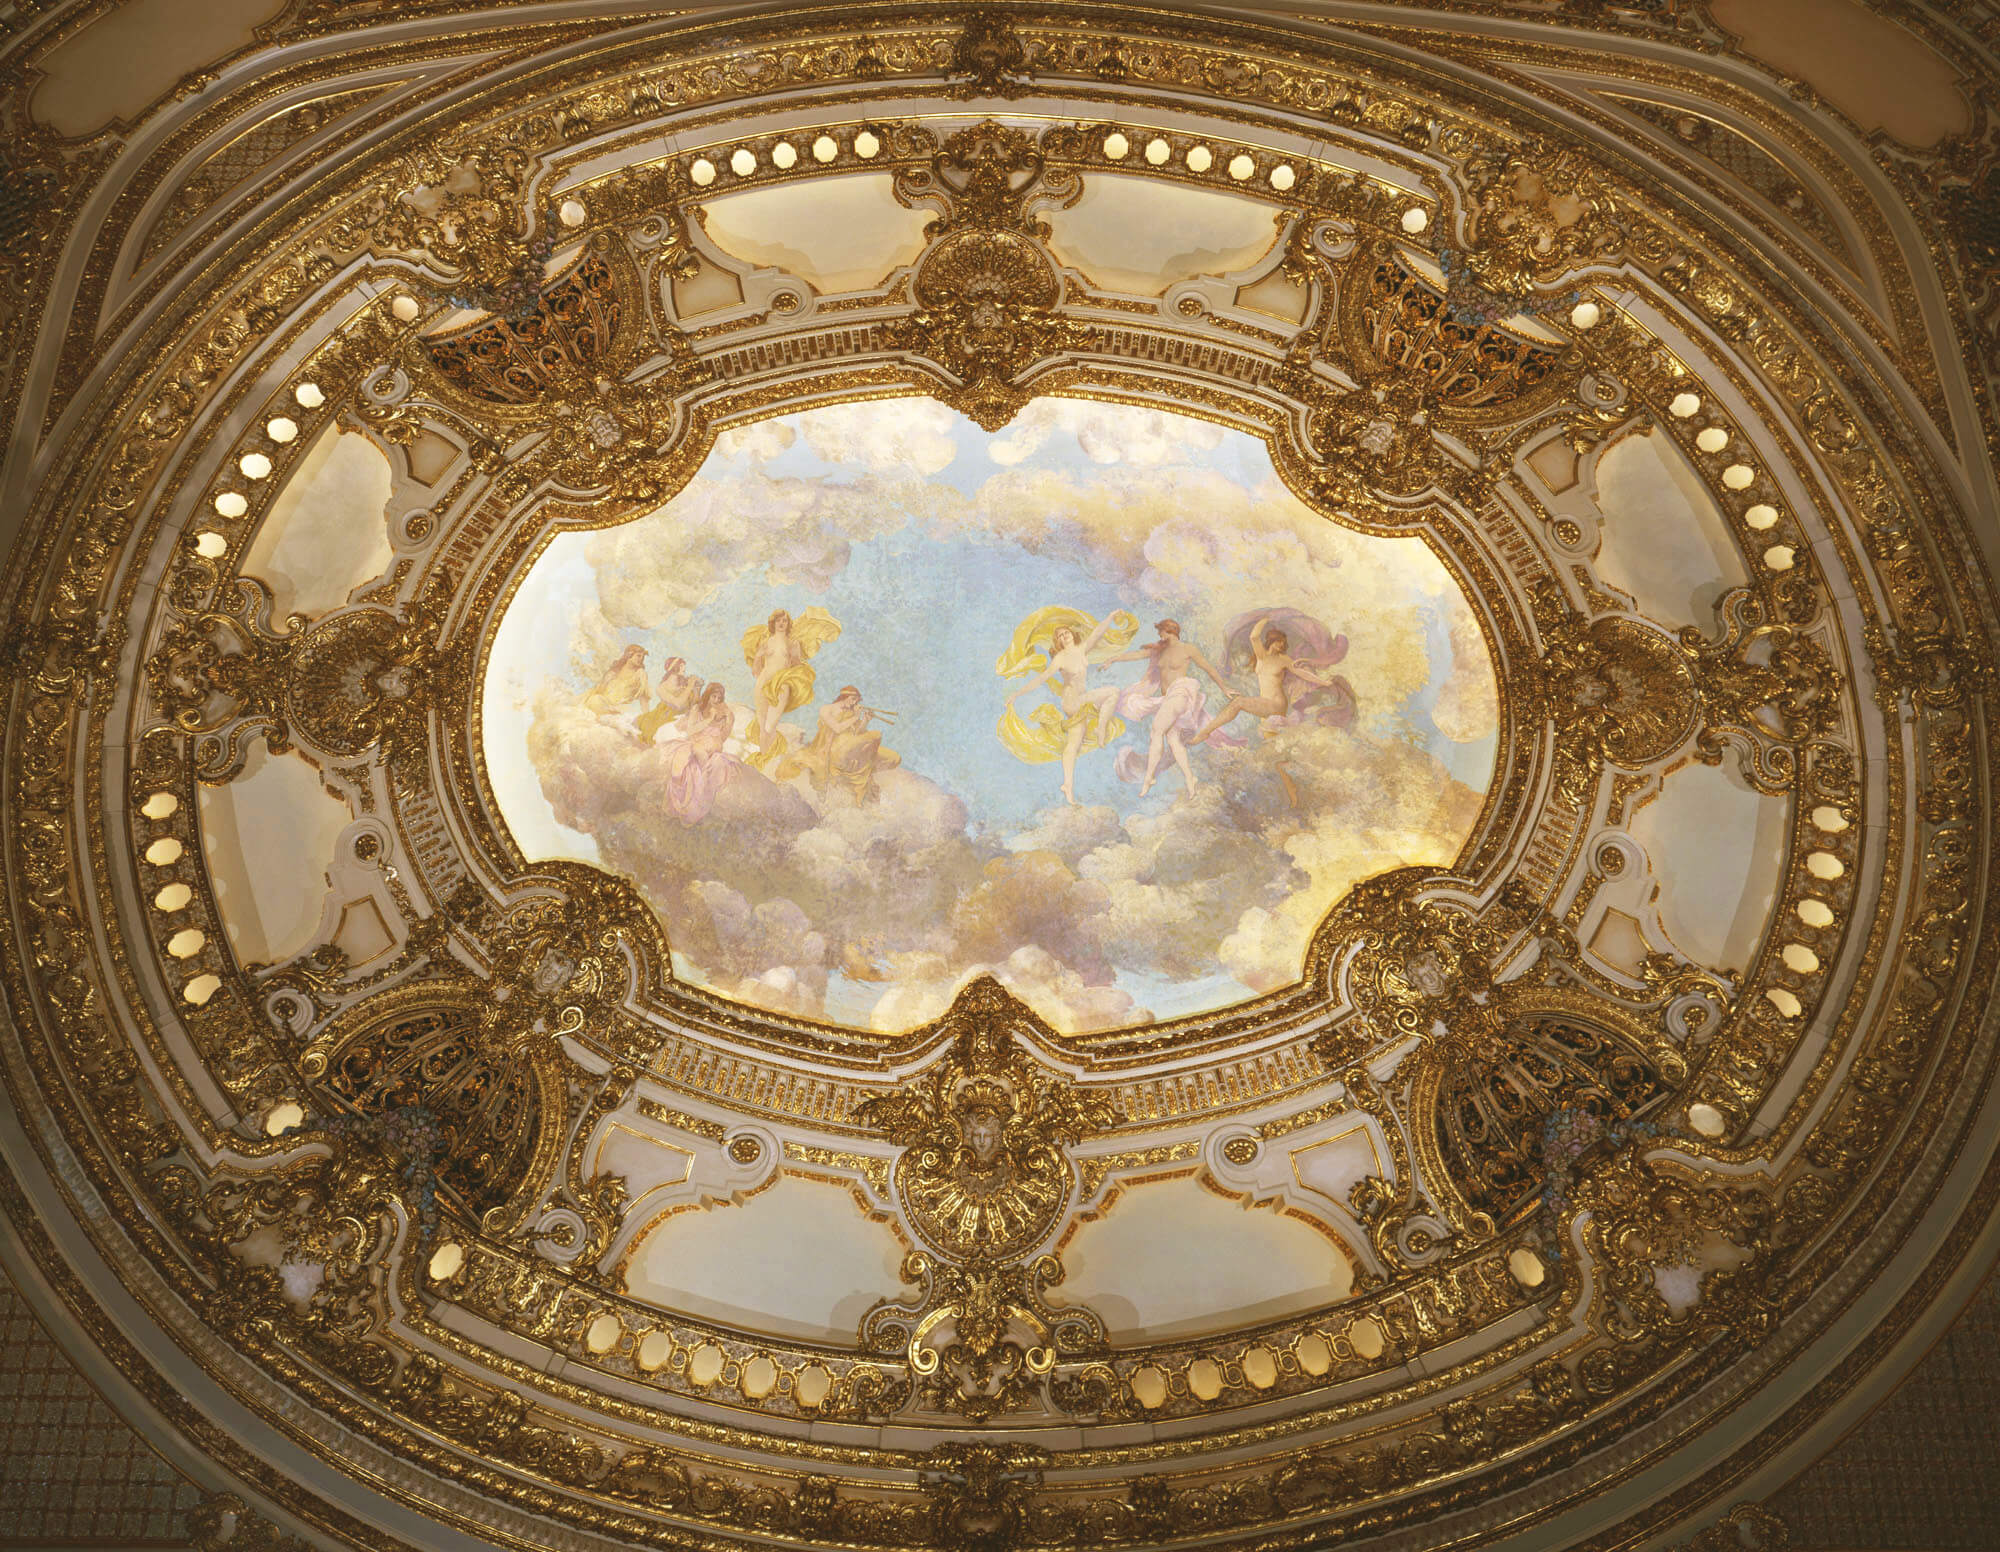 Ornate ceiling painting with dancing angels on clouds.